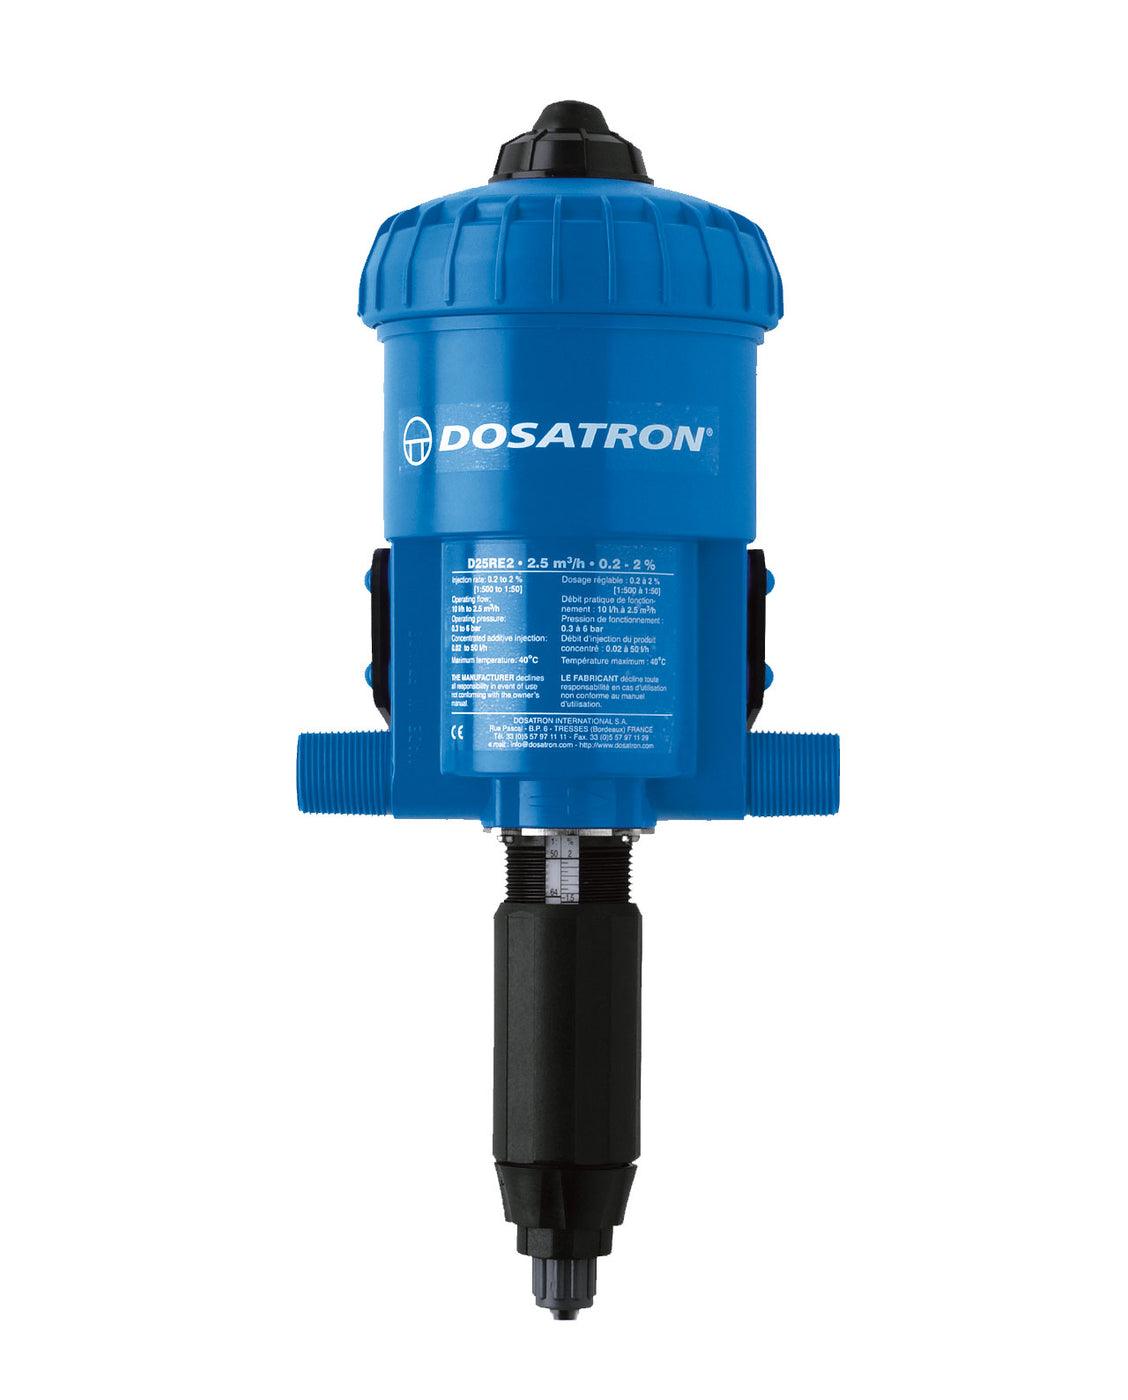 D25RE2 - 7.5 to 75mL per gal. (1:500 to 1:50) - Dosatron Water Powered Nutrient Doser - 11gpm